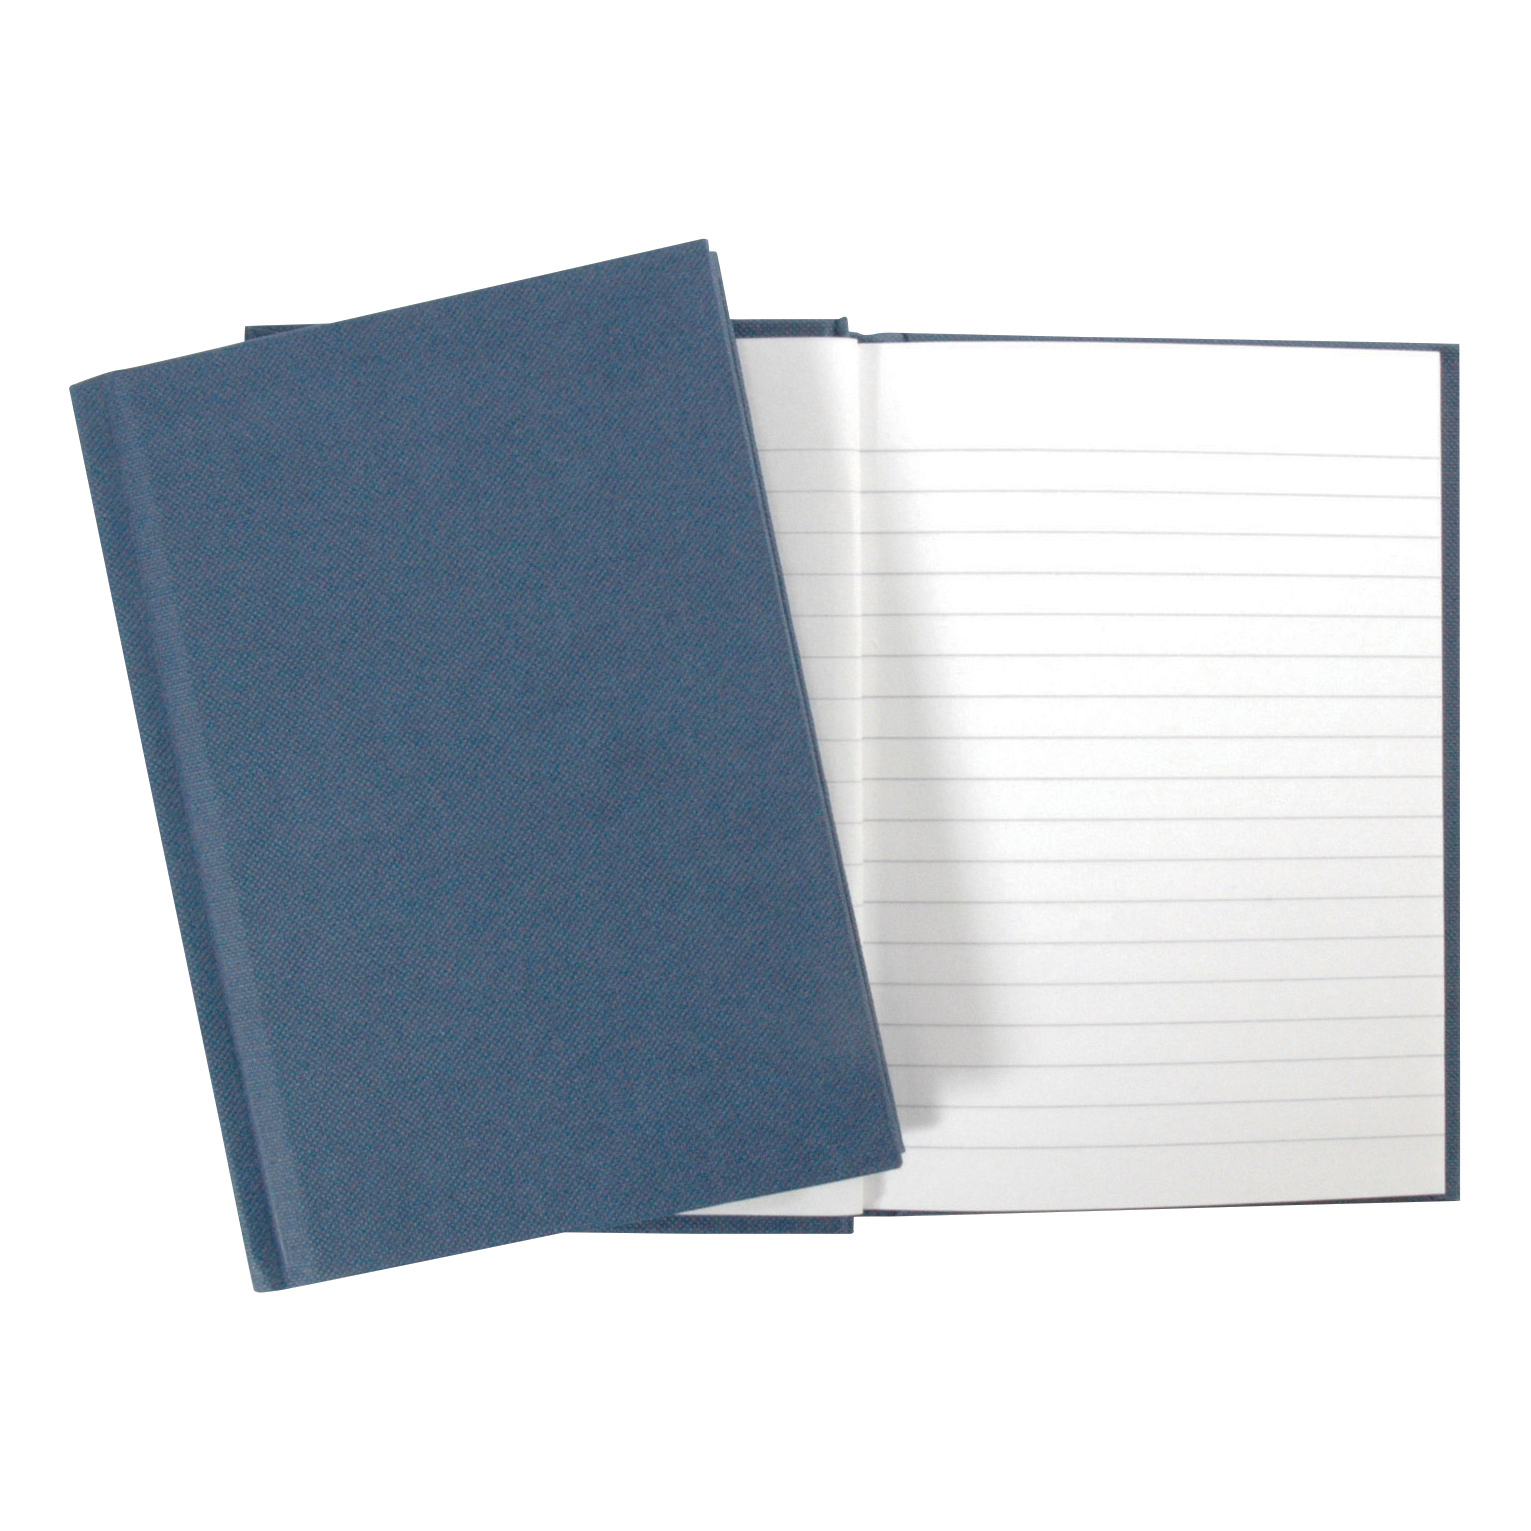 Image for Cambridge Notebook Casebound 70gsm Ruled 192pp A6 Blue Ref 100080460 [Pack 10]